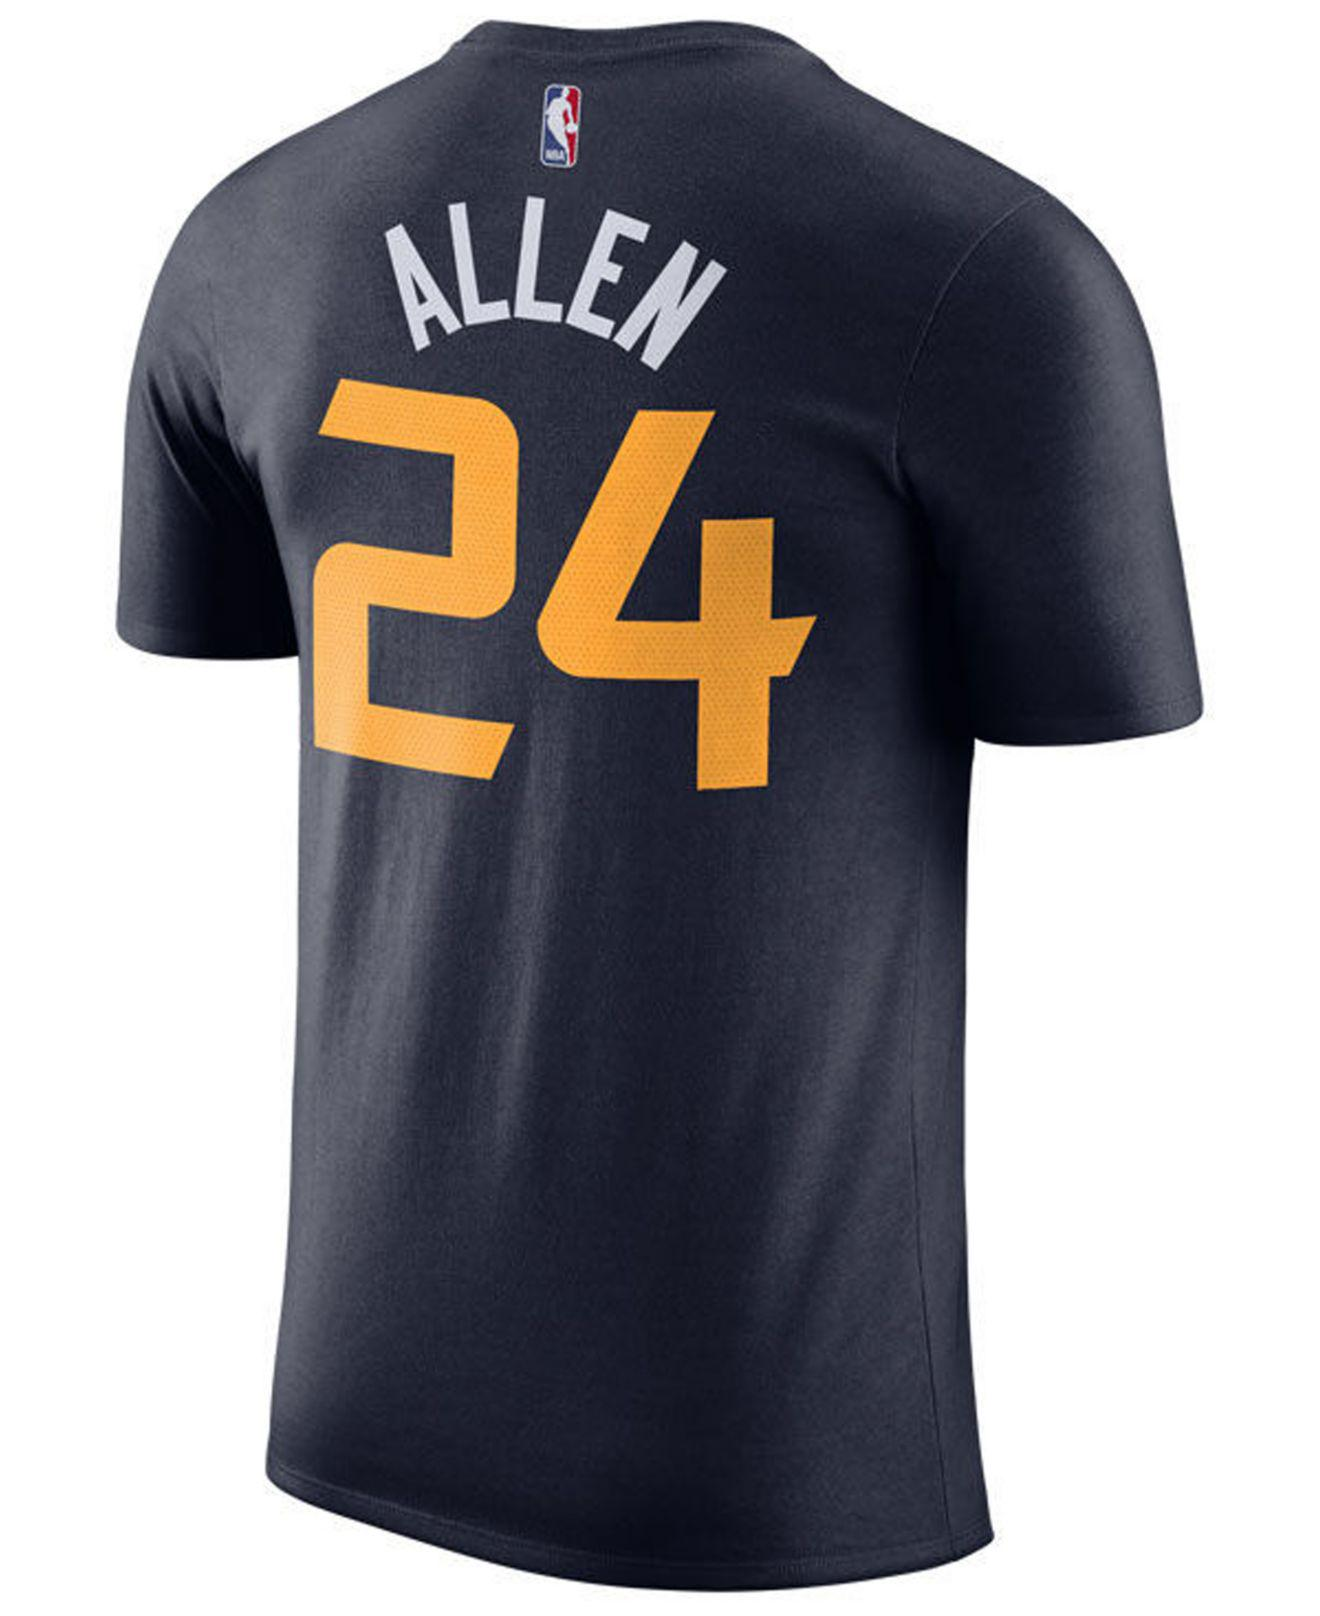 66916614a36e Lyst - Nike Grayson Allen Utah Jazz Icon Player T-shirt in Blue for Men